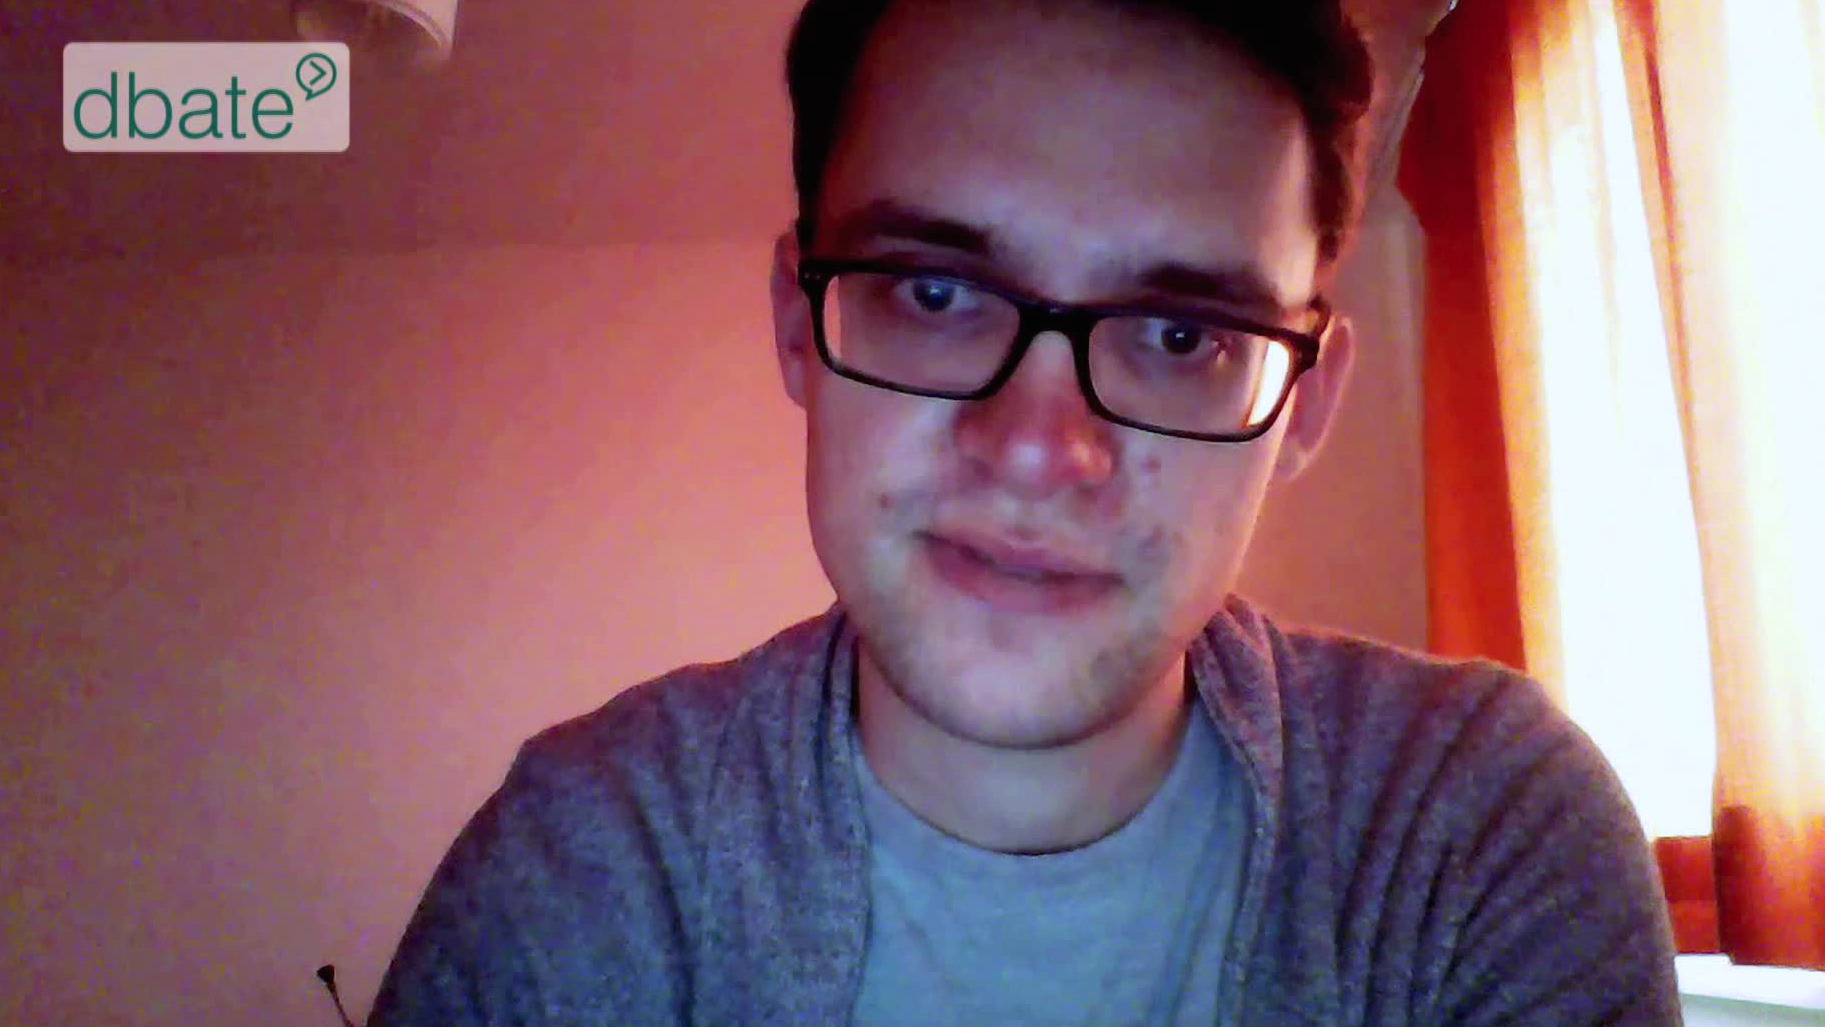 Screenshot_dbate_Lukas Mengelkamp_Henry Kissinger_Skype-Talk